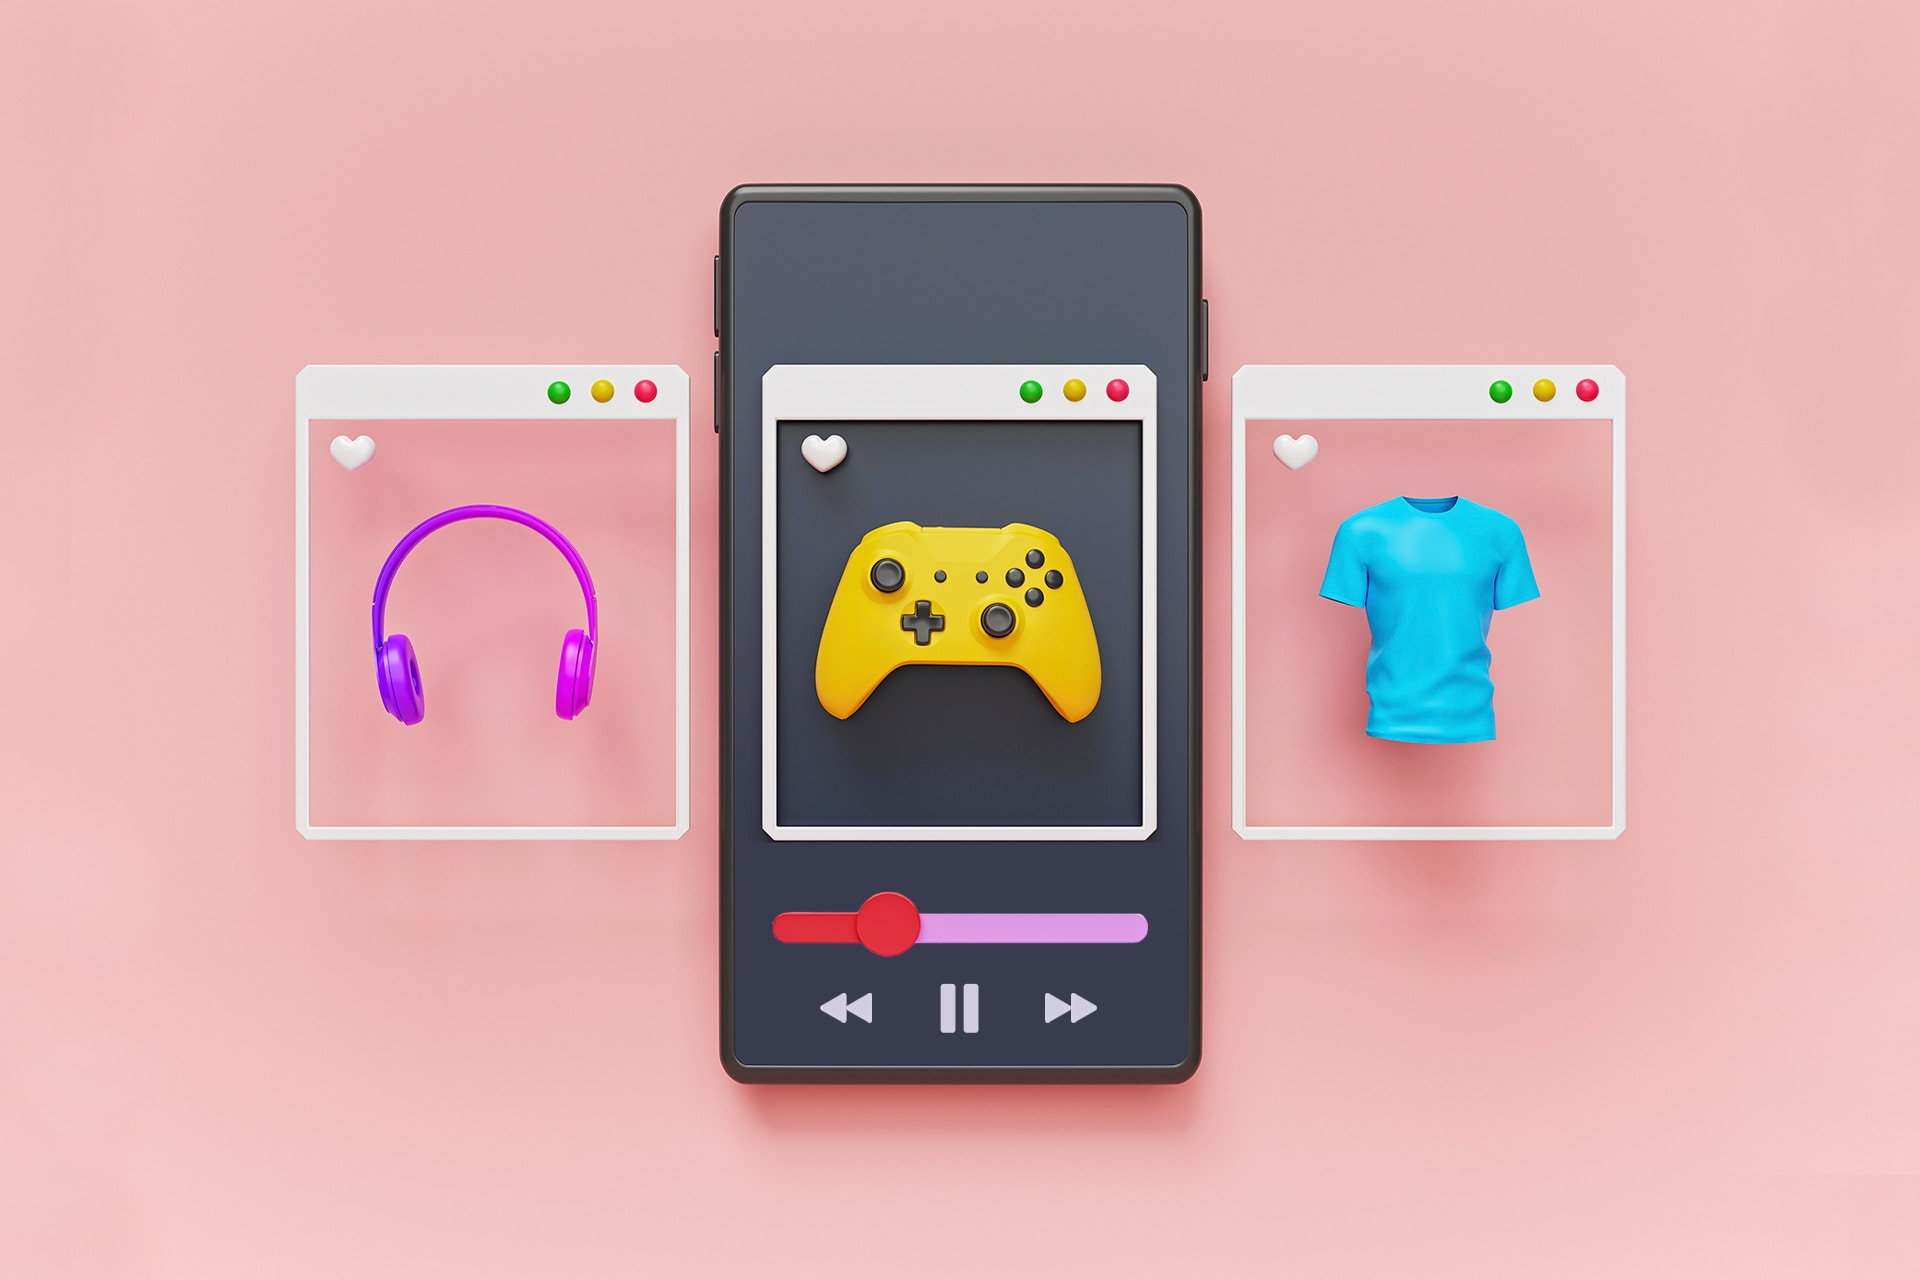 Mock-ups of several YouTube ads hovering over a smartphone in a carousel format that give you a sense of how video marketing works. The first ad features a pair of headphones, the second ad features a video game controller, and the final ad in the series displays a blue t-shirt.